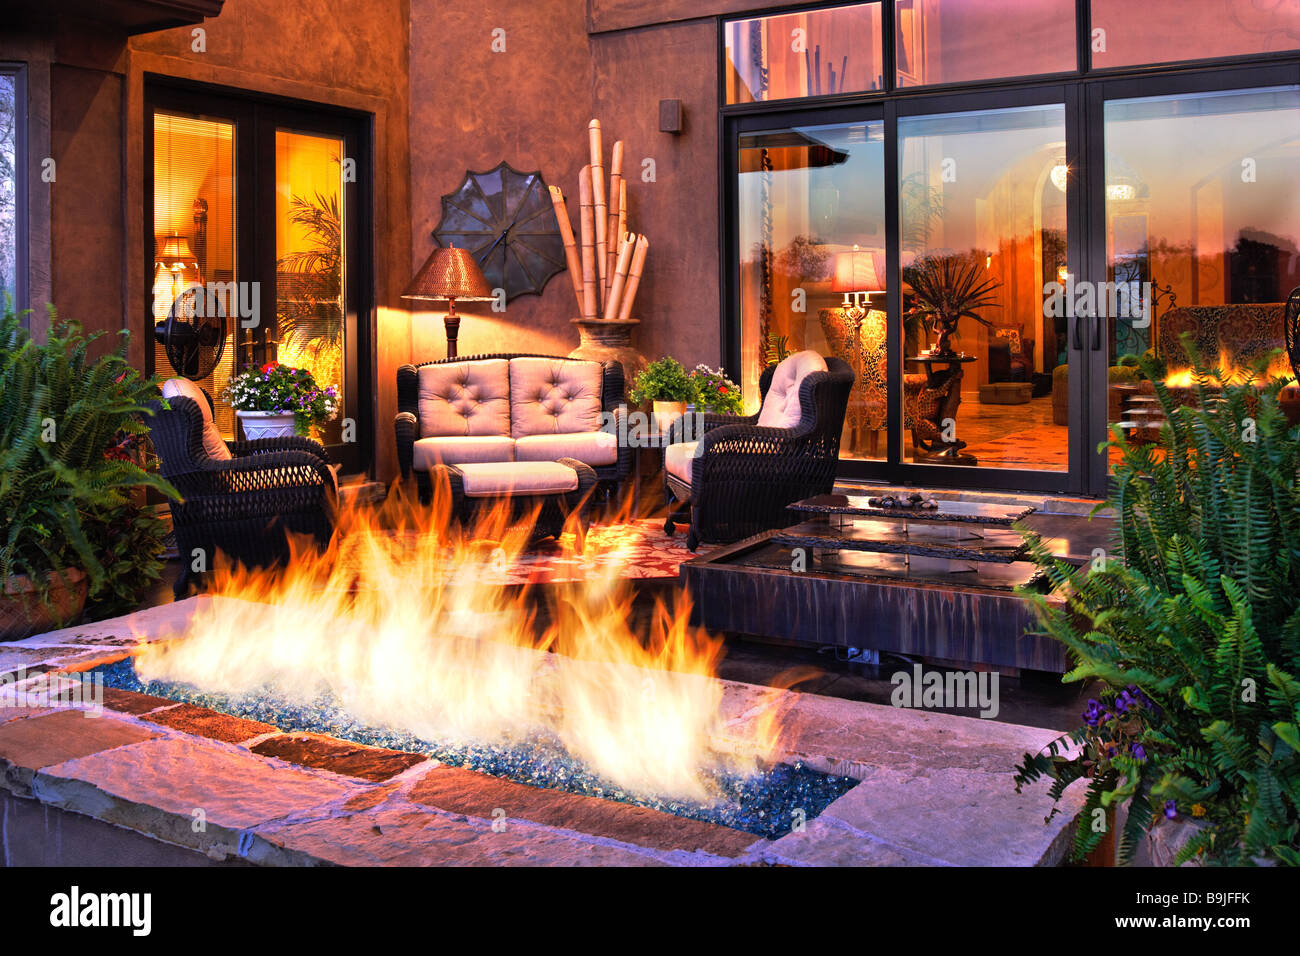 Gas Fireplace On Outdoor Patio. Flames Emerging From Rocks.